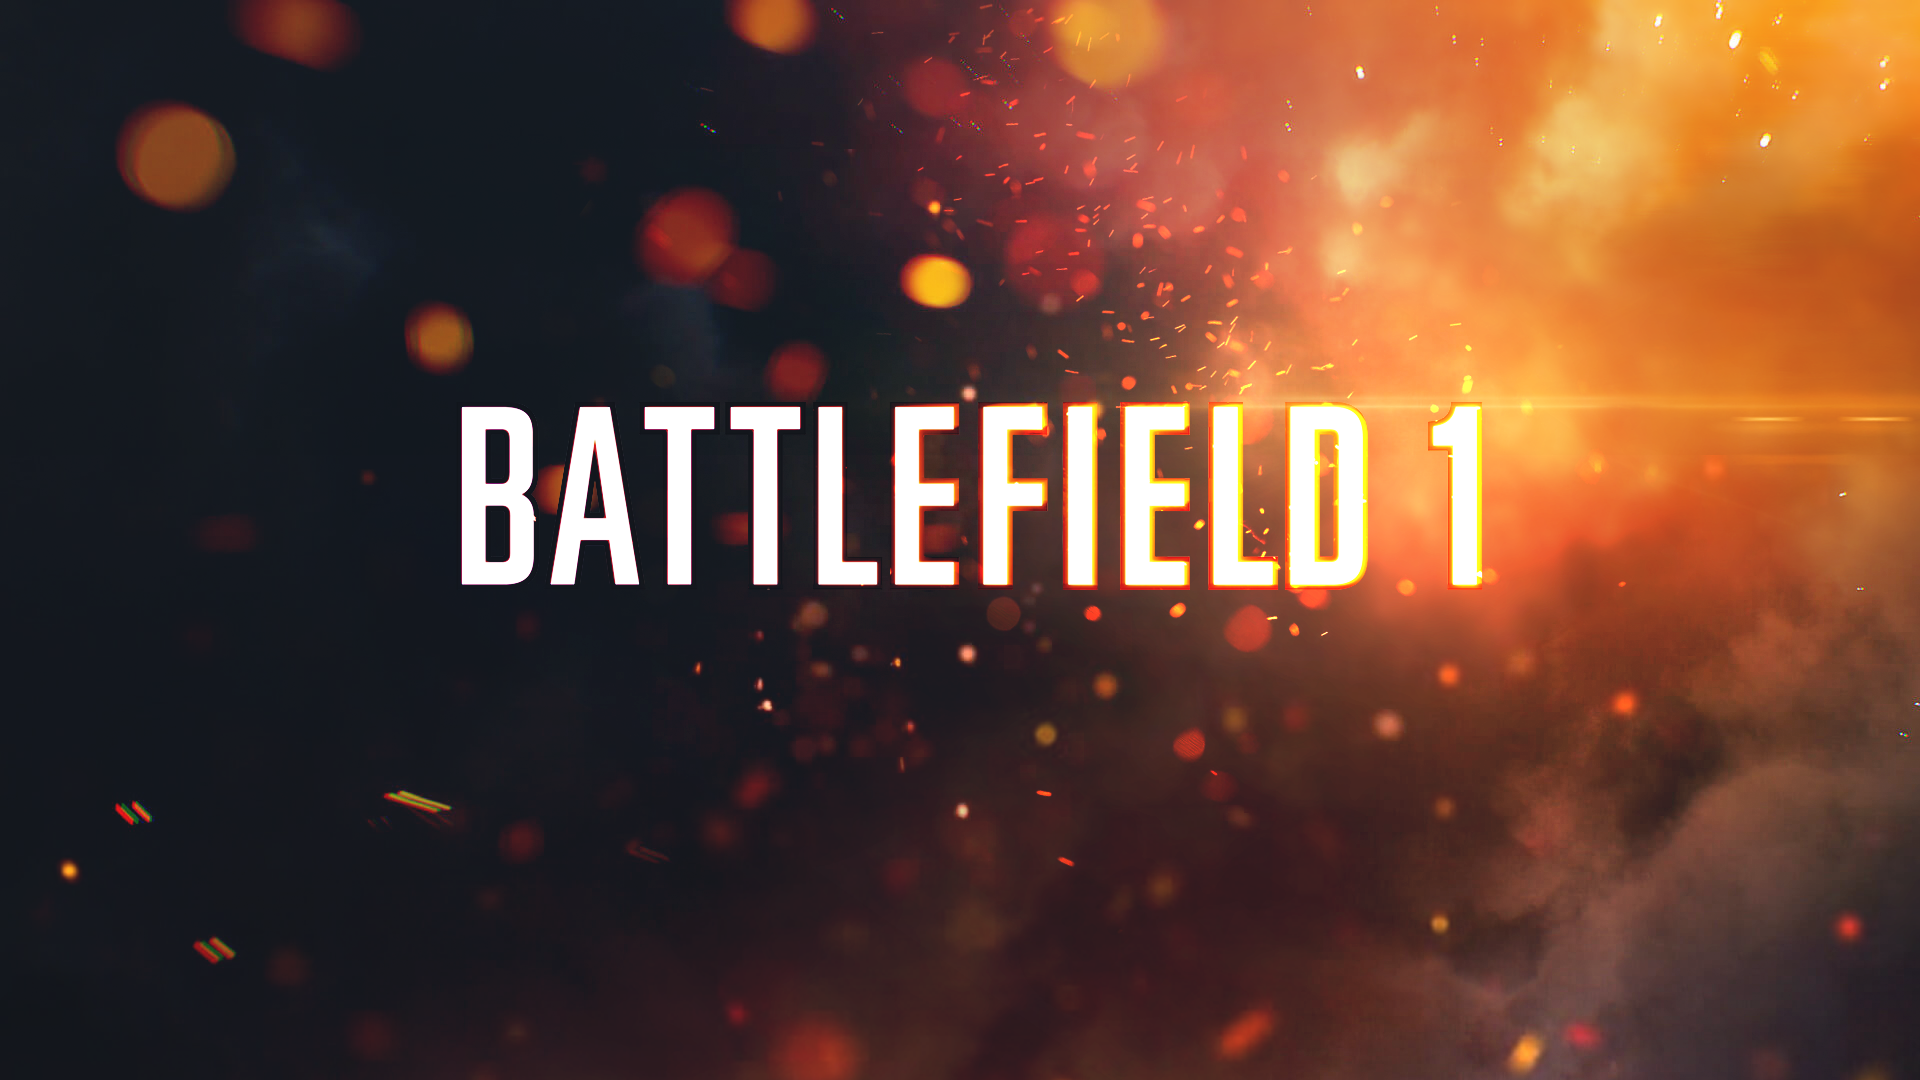 Battlefield 1 HD Wallpaper